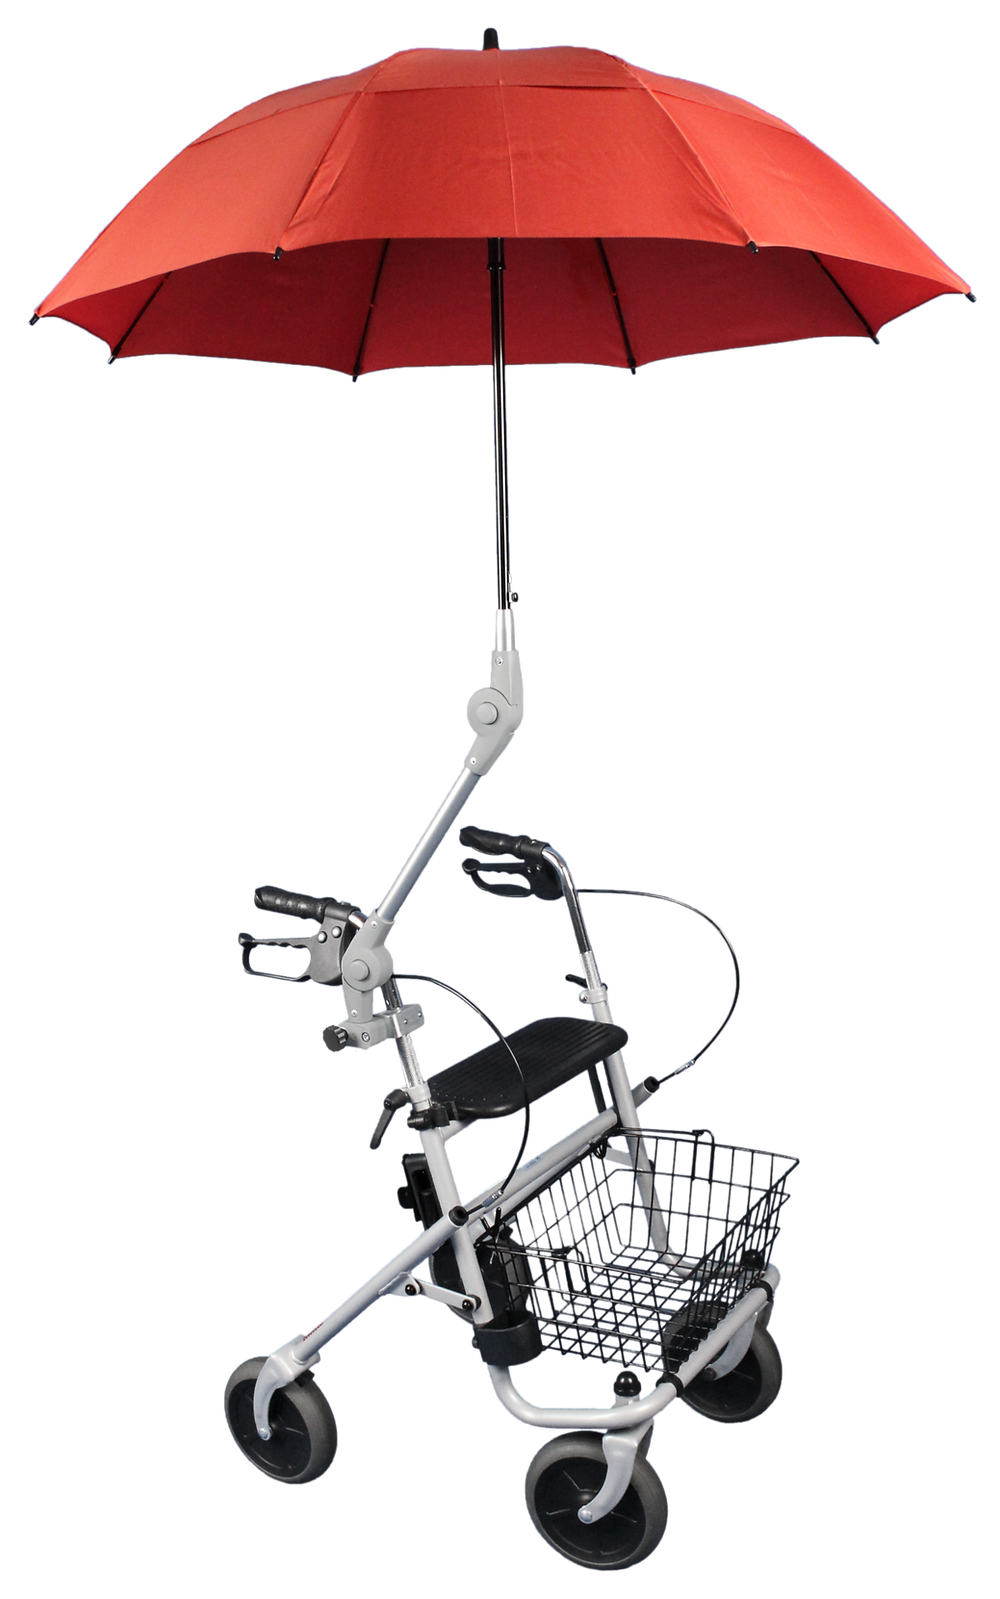 Walker umbrella